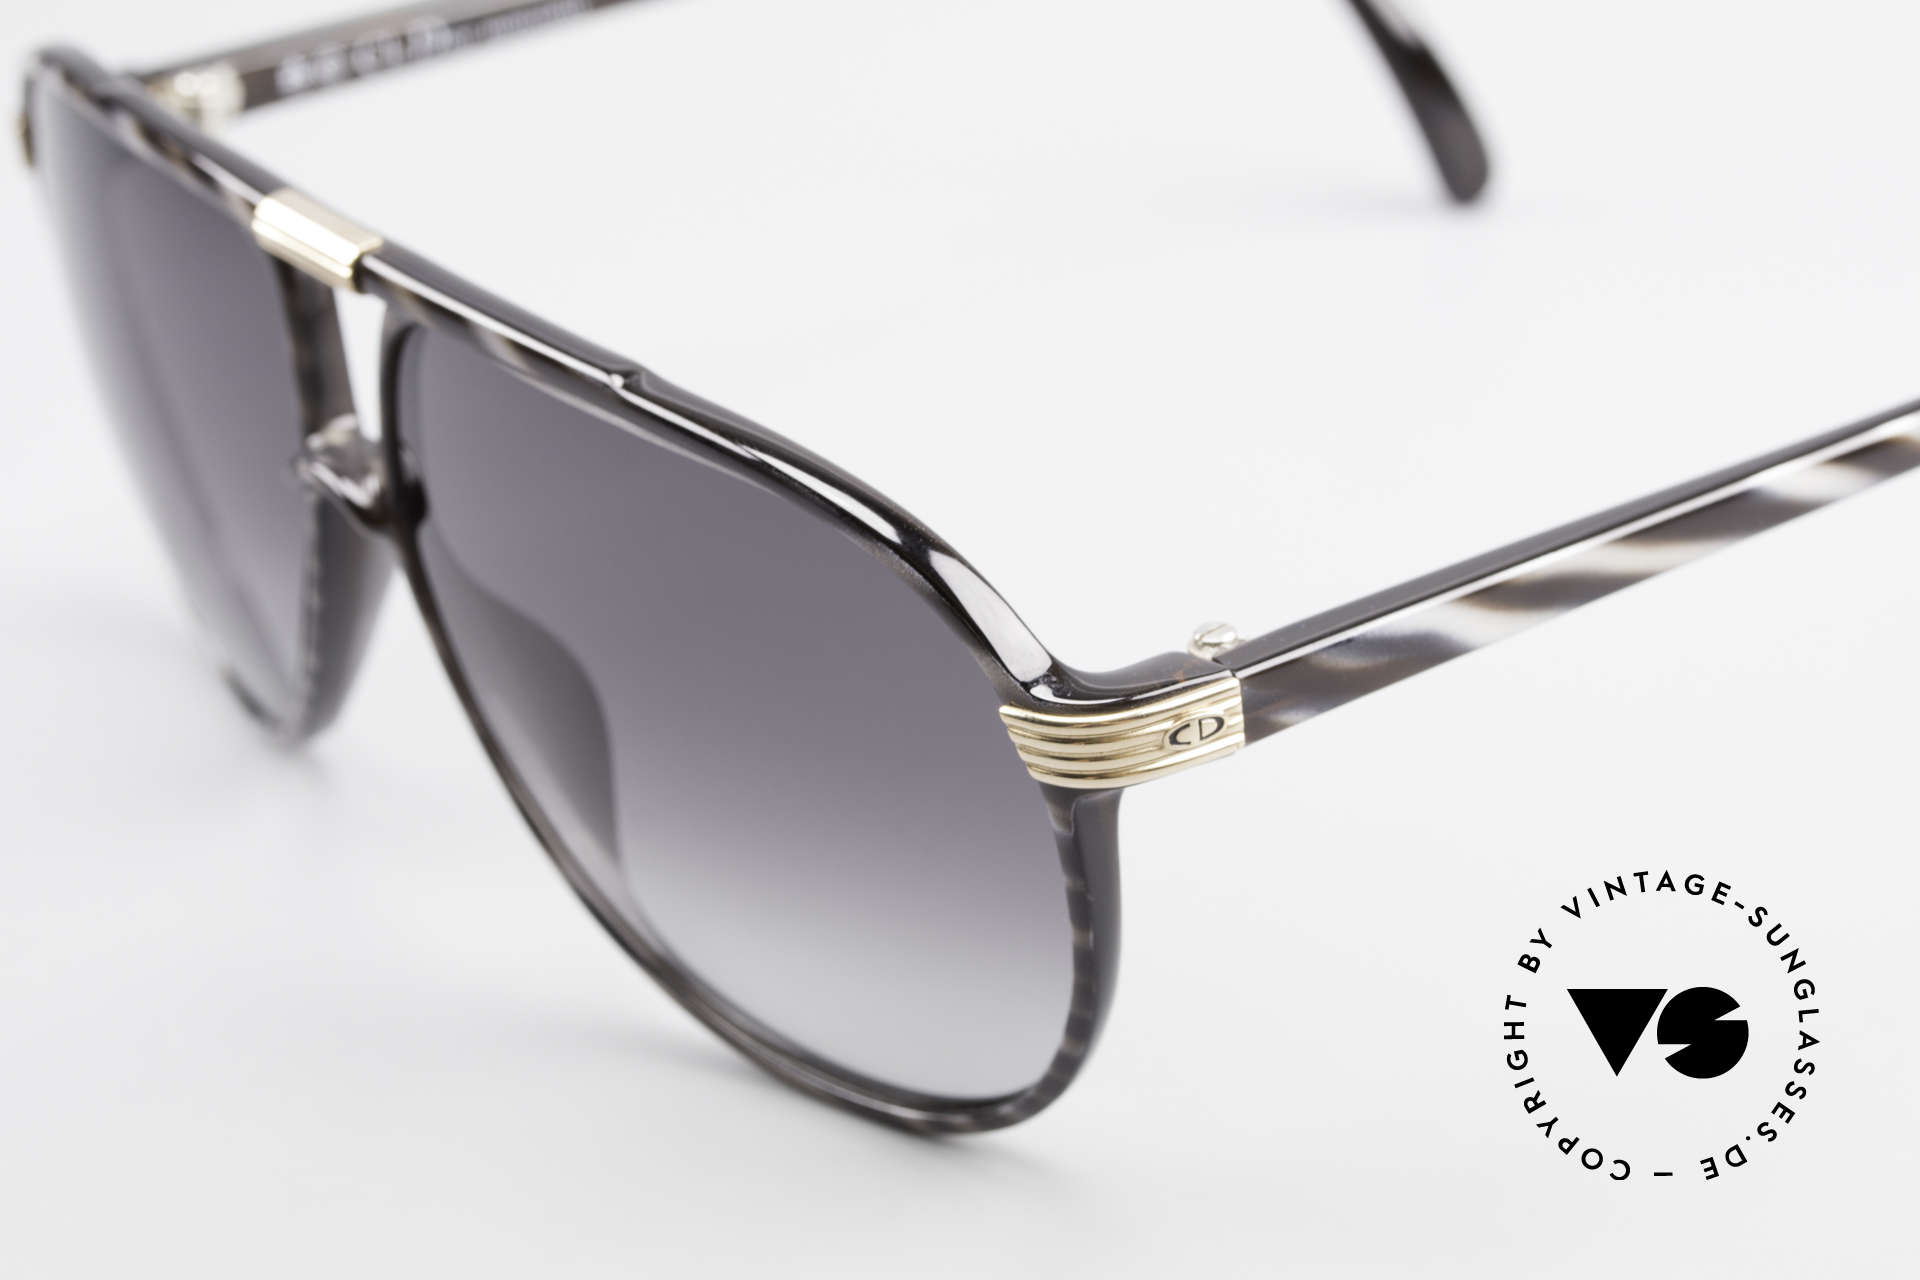 Christian Dior 2300 Optyl Monsieur Sunglasses, Optyl material does not seem to age (built to last), Made for Men